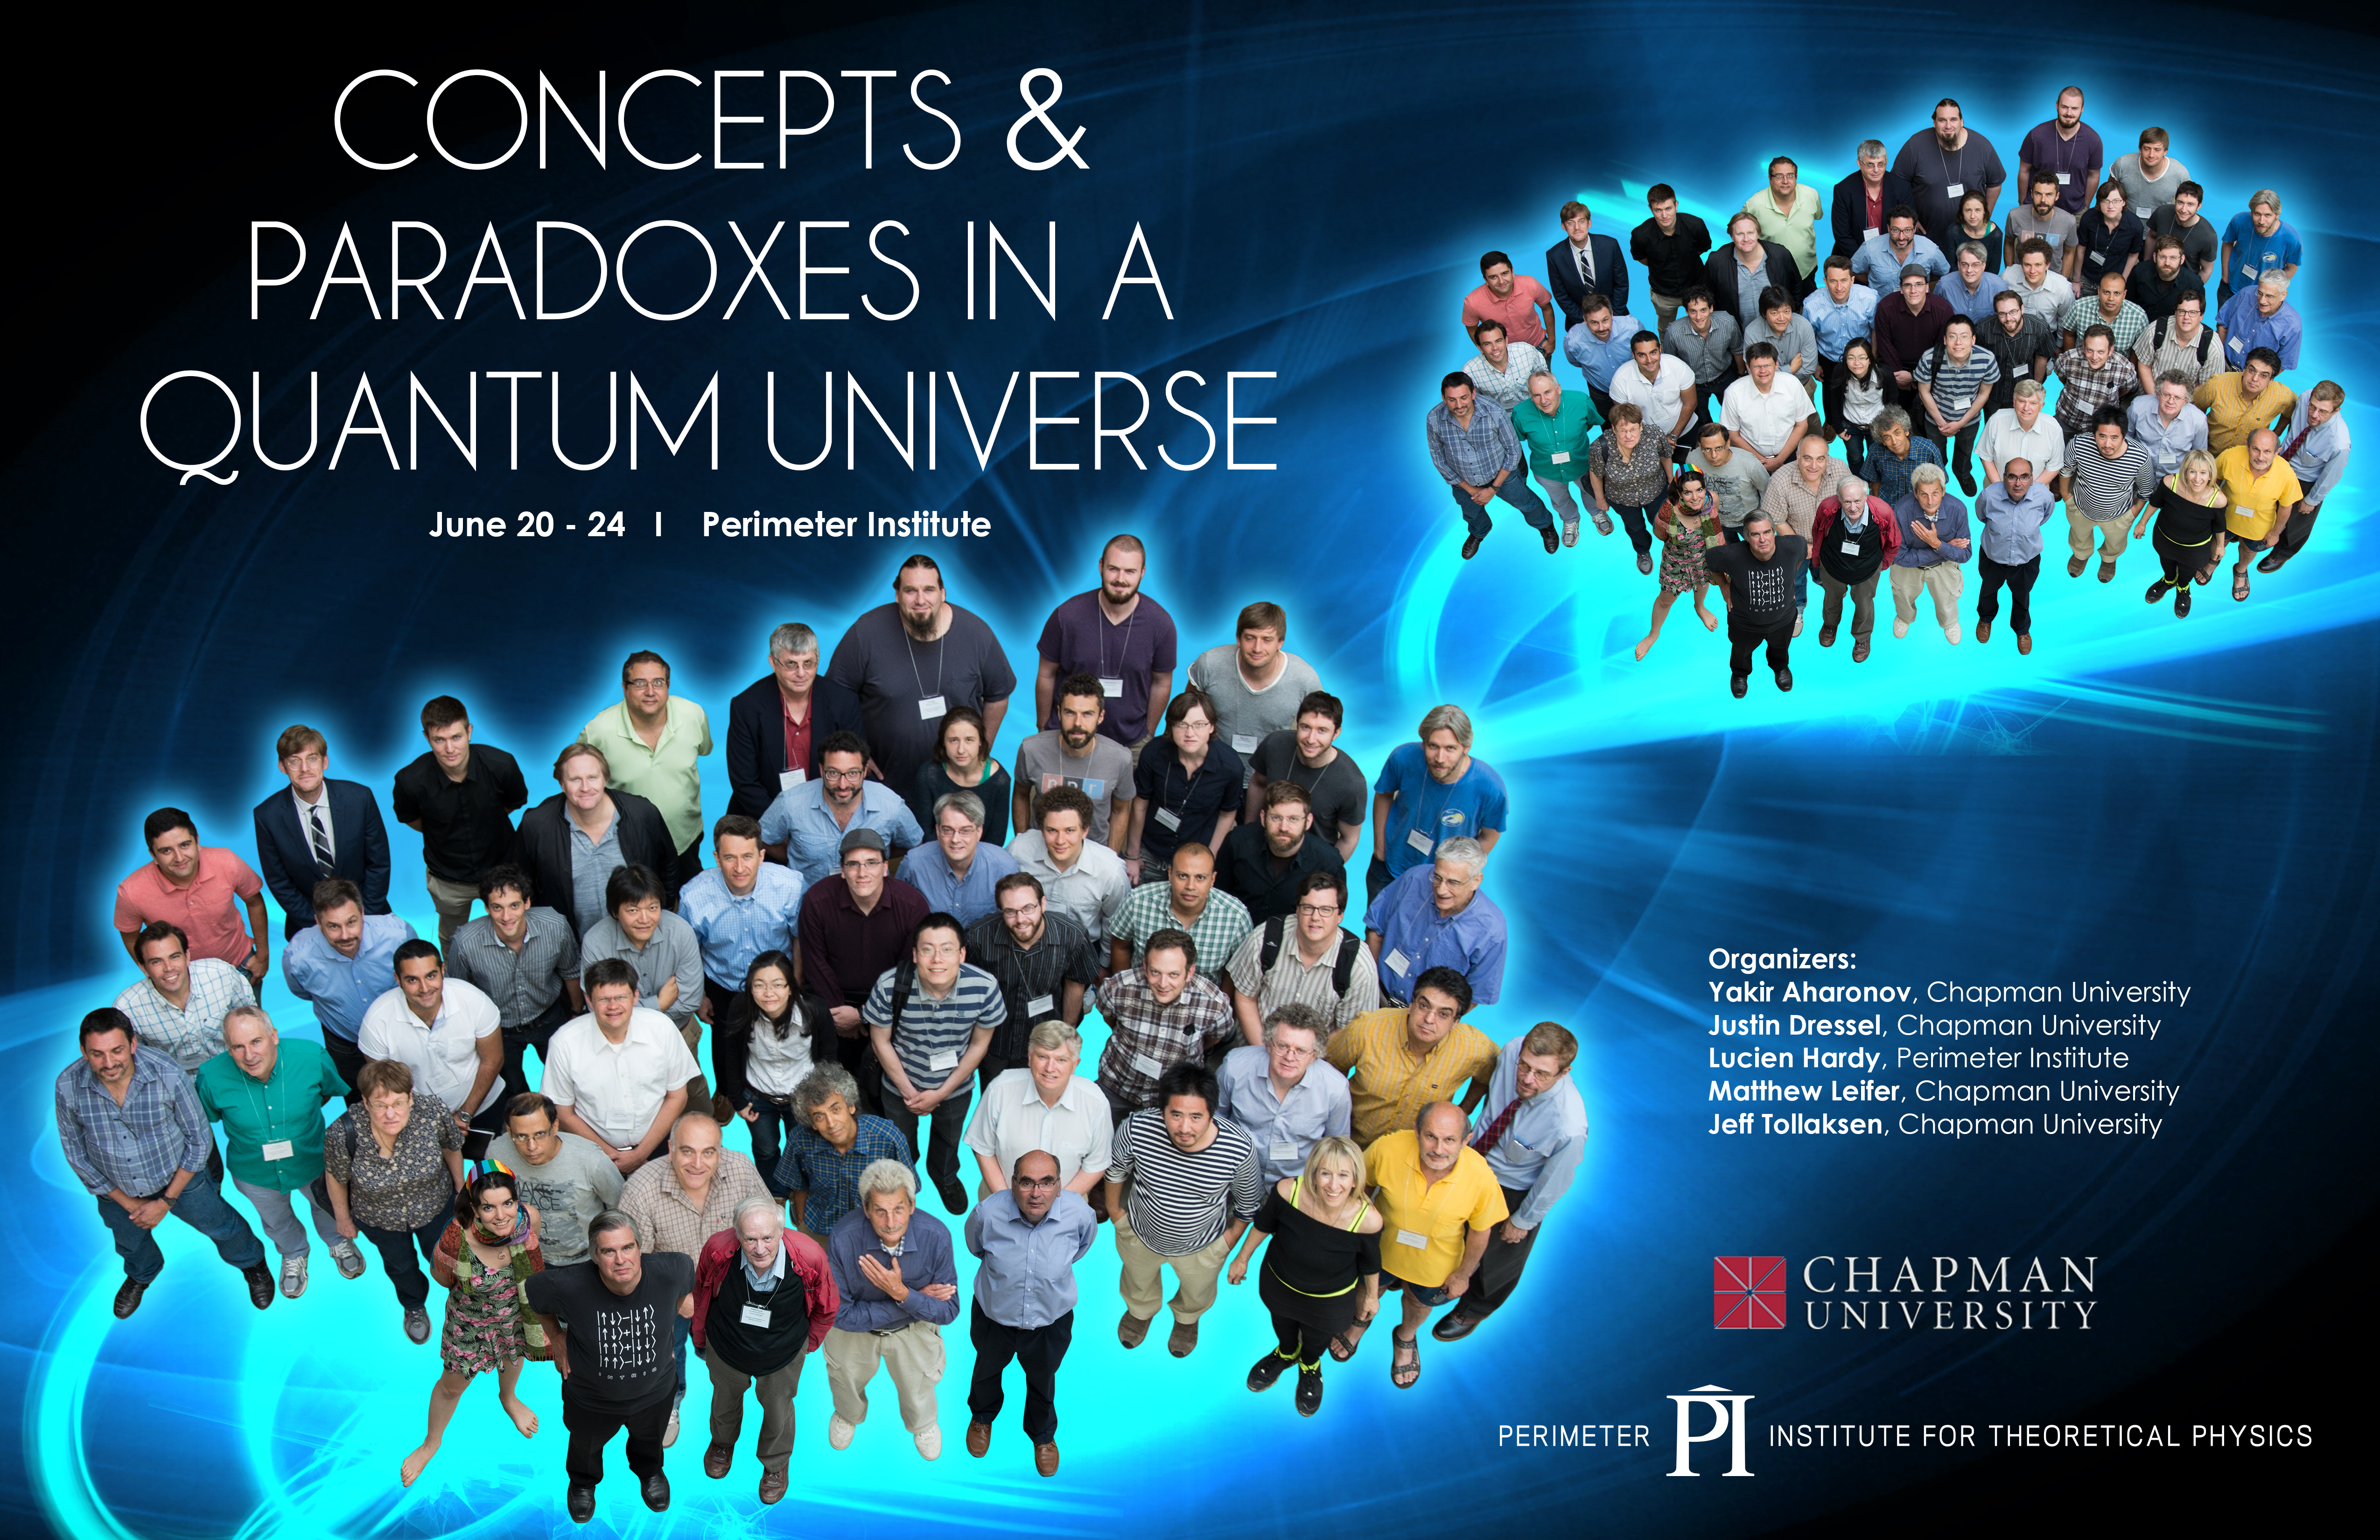 Concepts and Paradoxes in a Quantum Universe